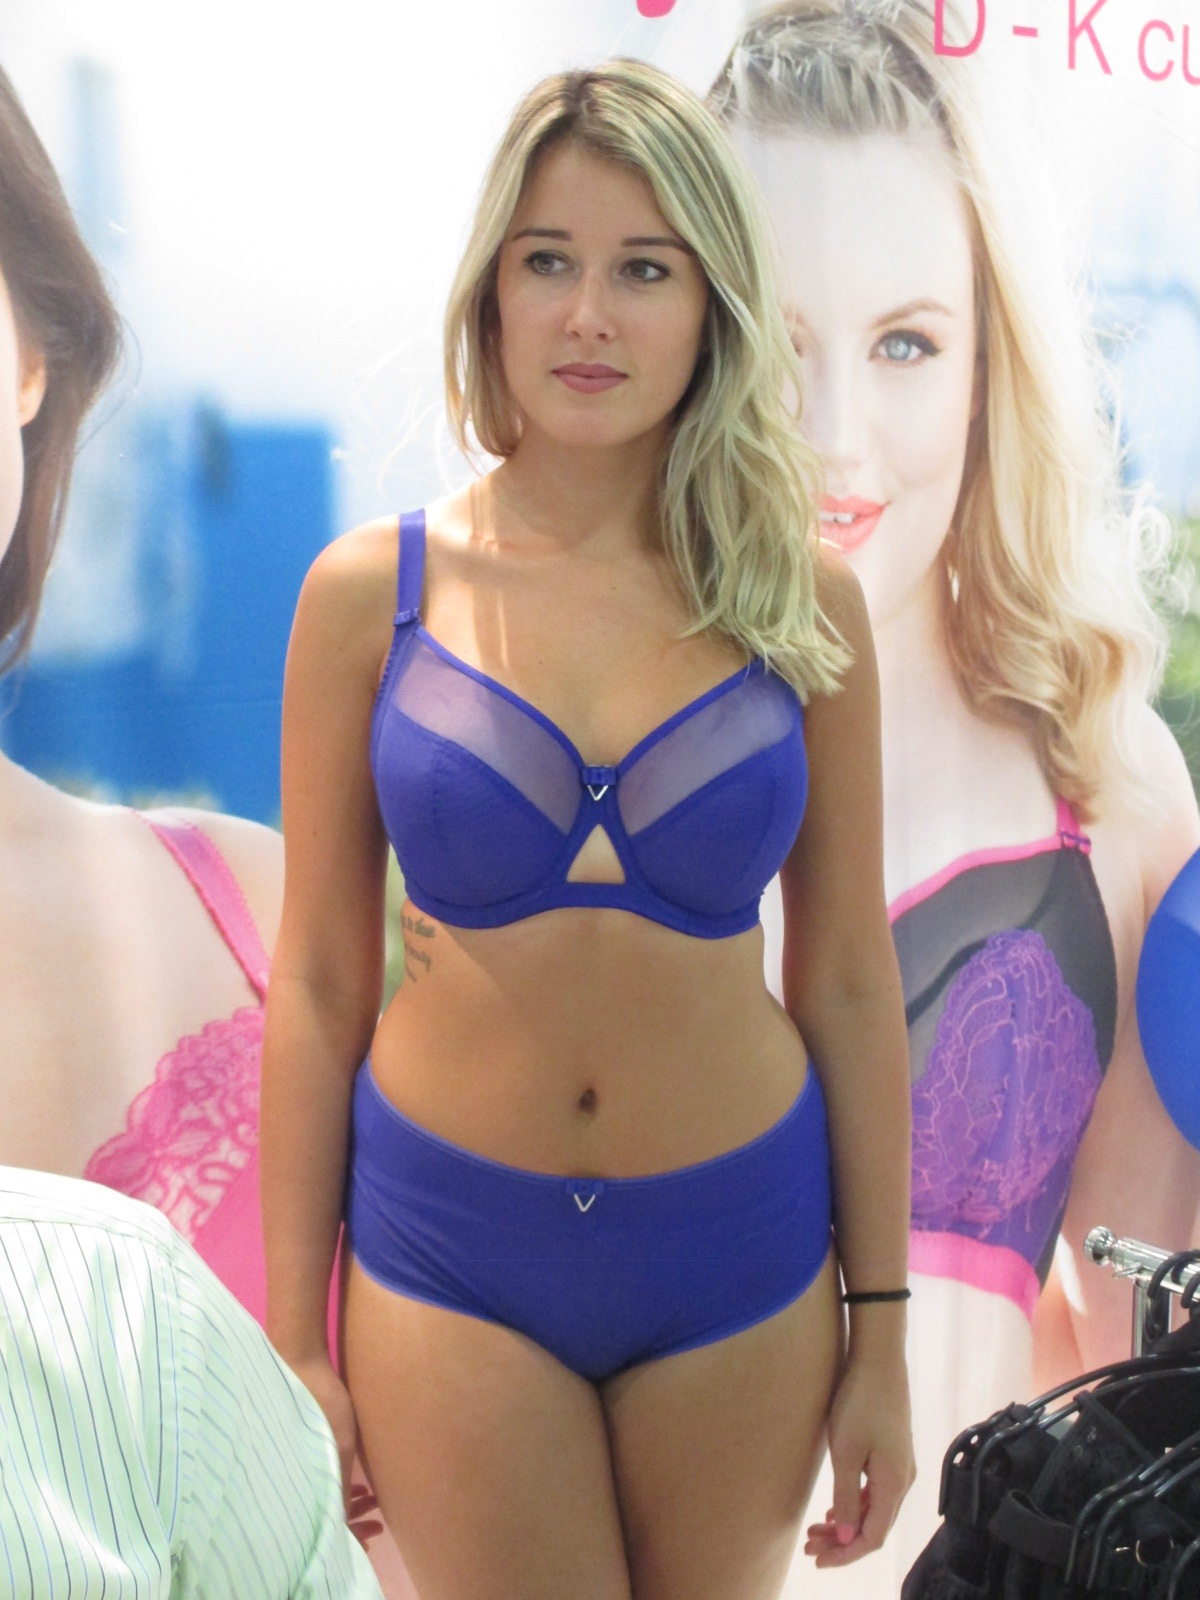 637d3c431f349 Off the Rack ~ Curve Expo Spring Summer 2018 Part IV  Curvy Kate ...